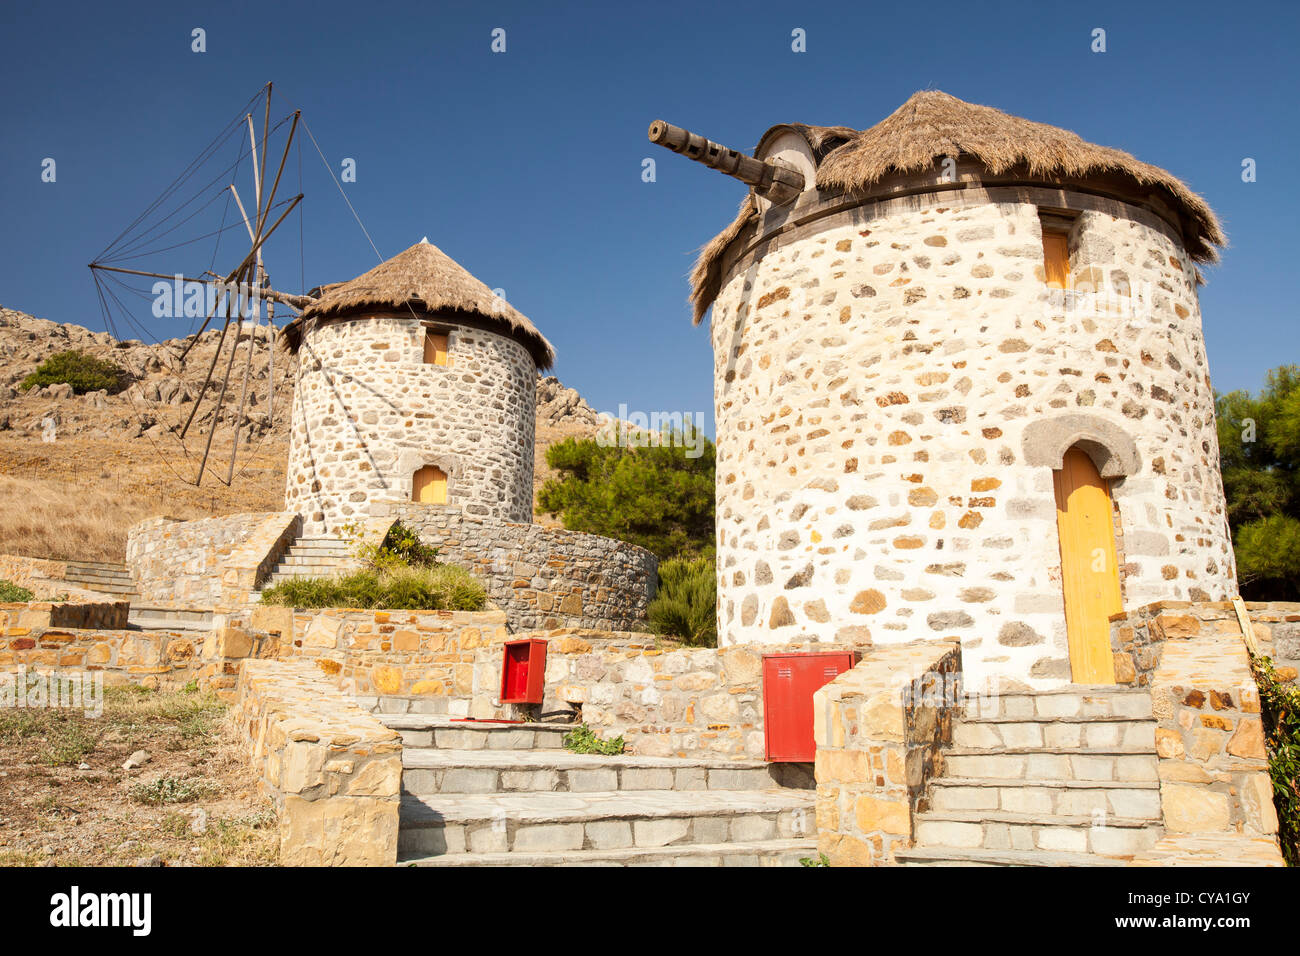 Old traditional Greek cloth sailed windmills in Kontias on Lemnos, Greece. - Stock Image